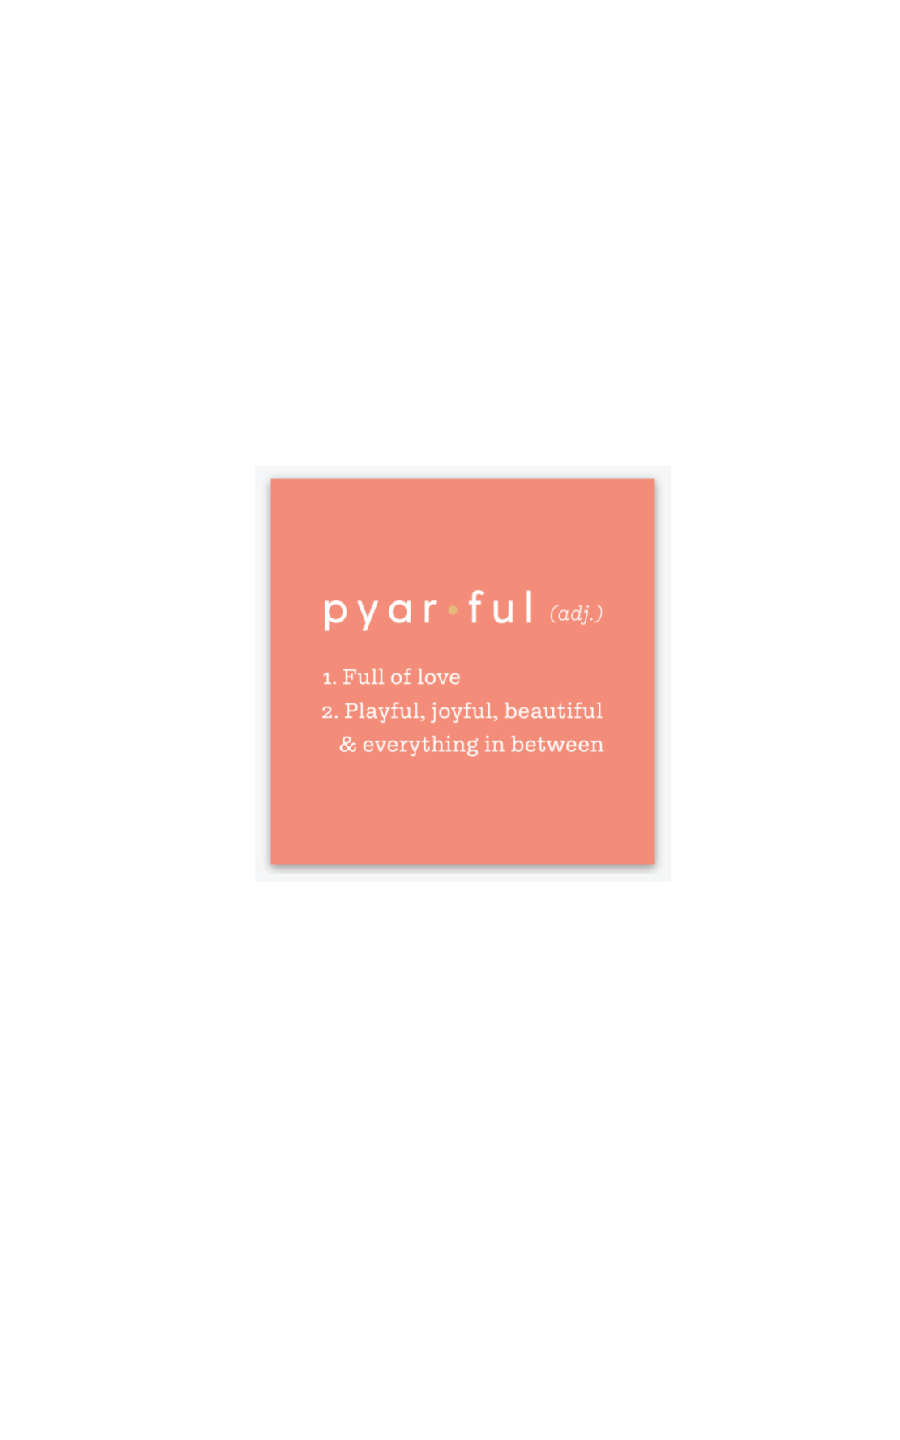 Pyarful Definition